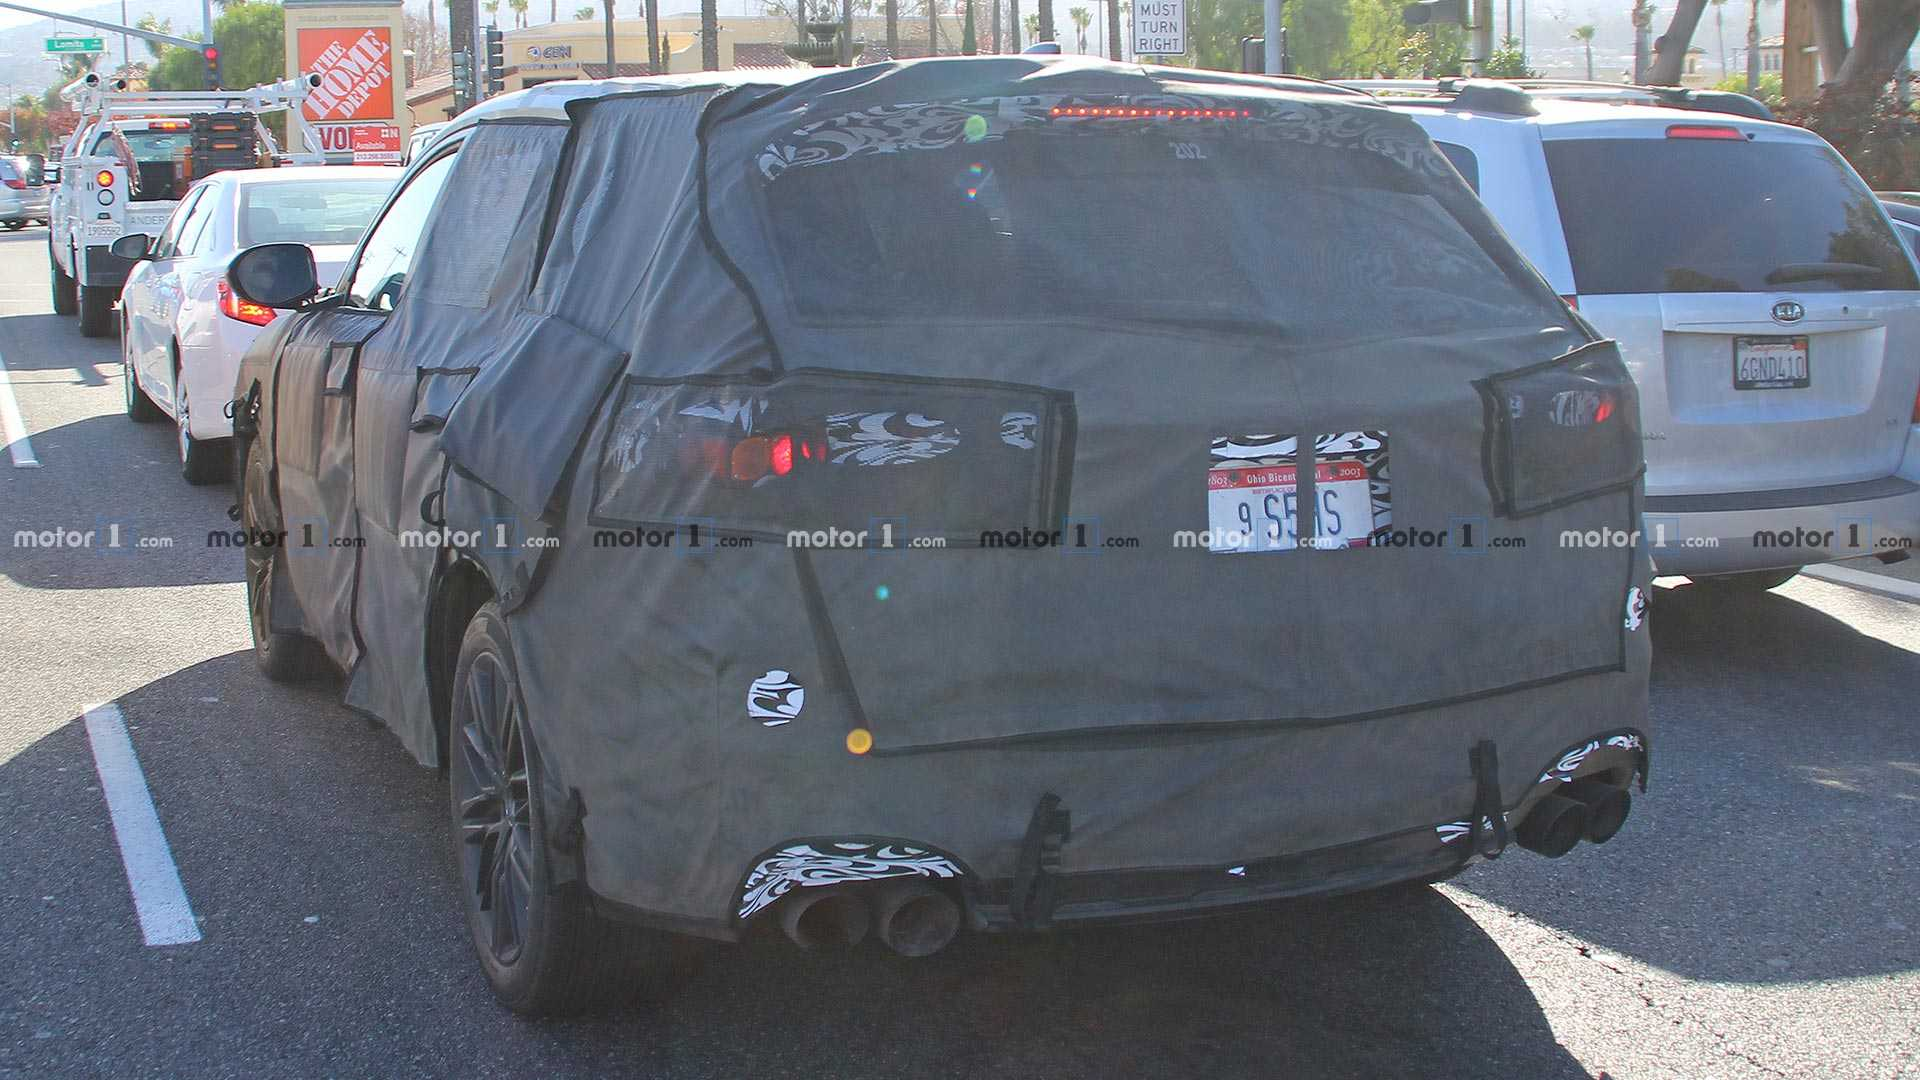 57 Gallery of 2020 Acura Mdx Spy Shots Images by 2020 Acura Mdx Spy Shots